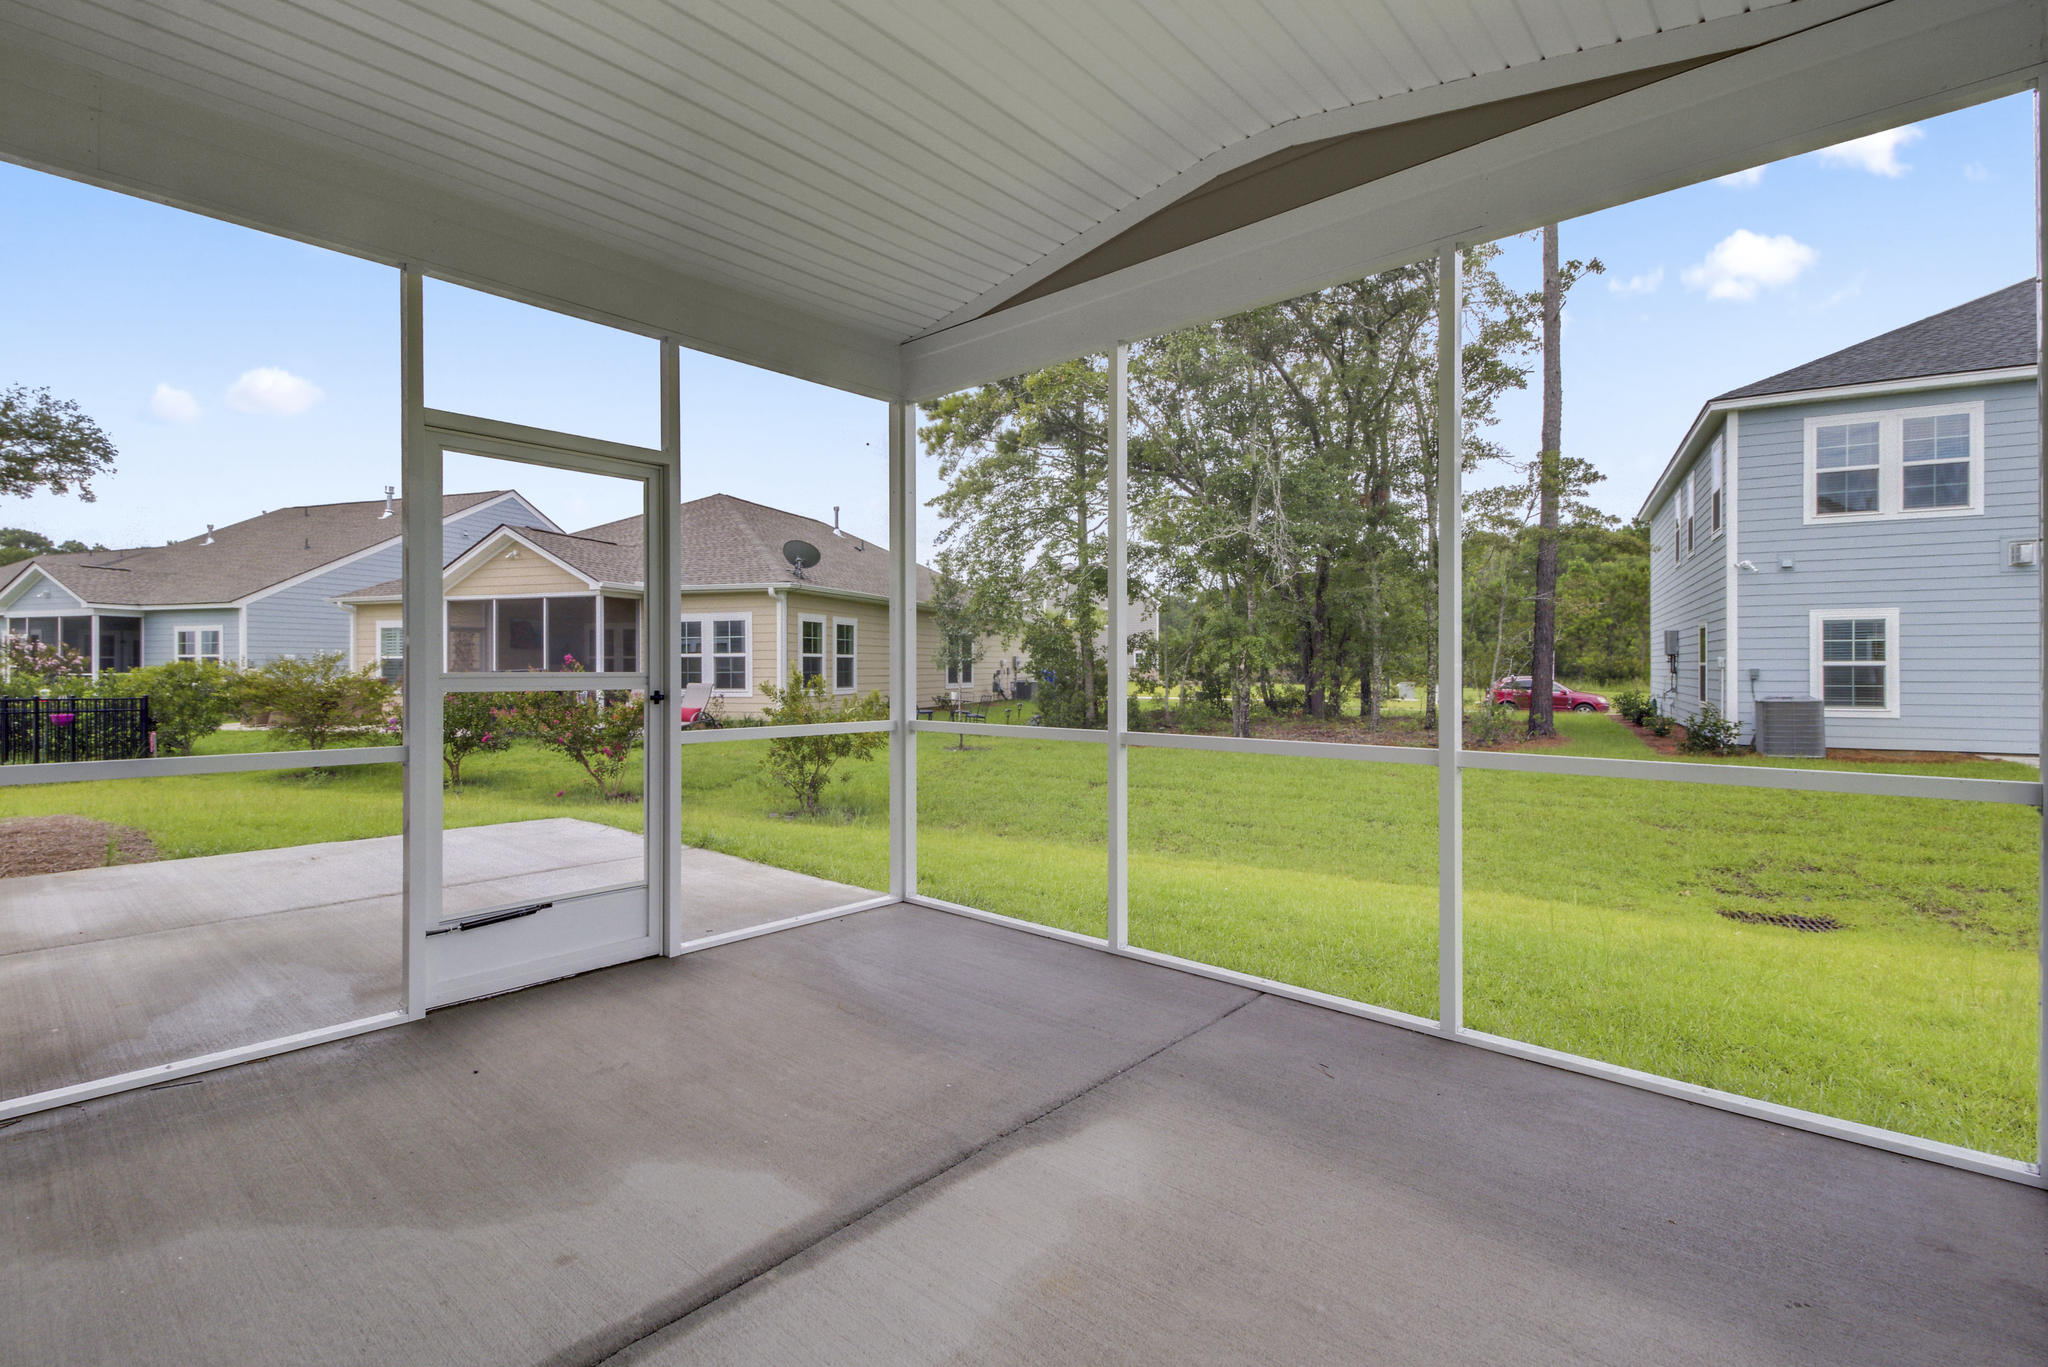 St. Johns Lake Homes For Sale - 1005 Pigeon, Johns Island, SC - 6